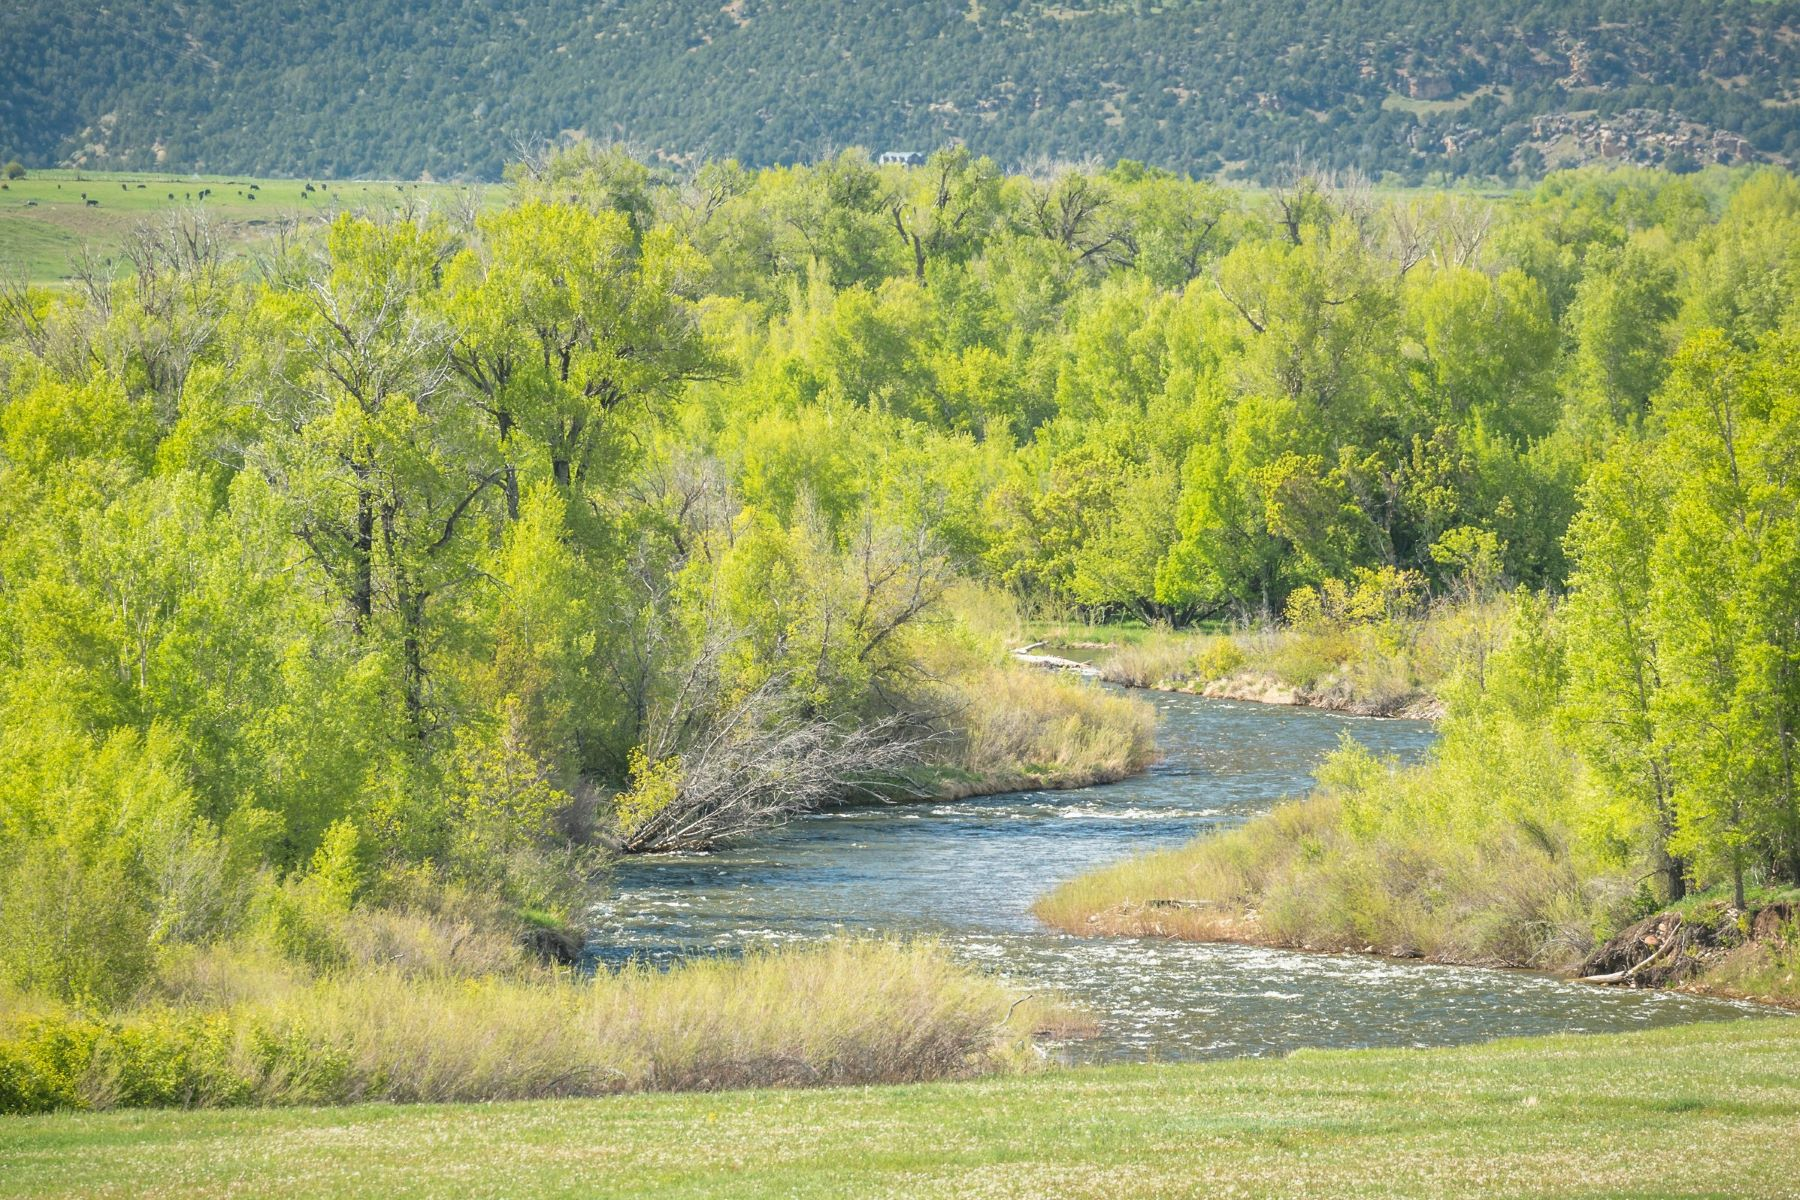 Land for Sale at Acreage on the White River TBD County Road 8 Meeker, Colorado 81641 United States